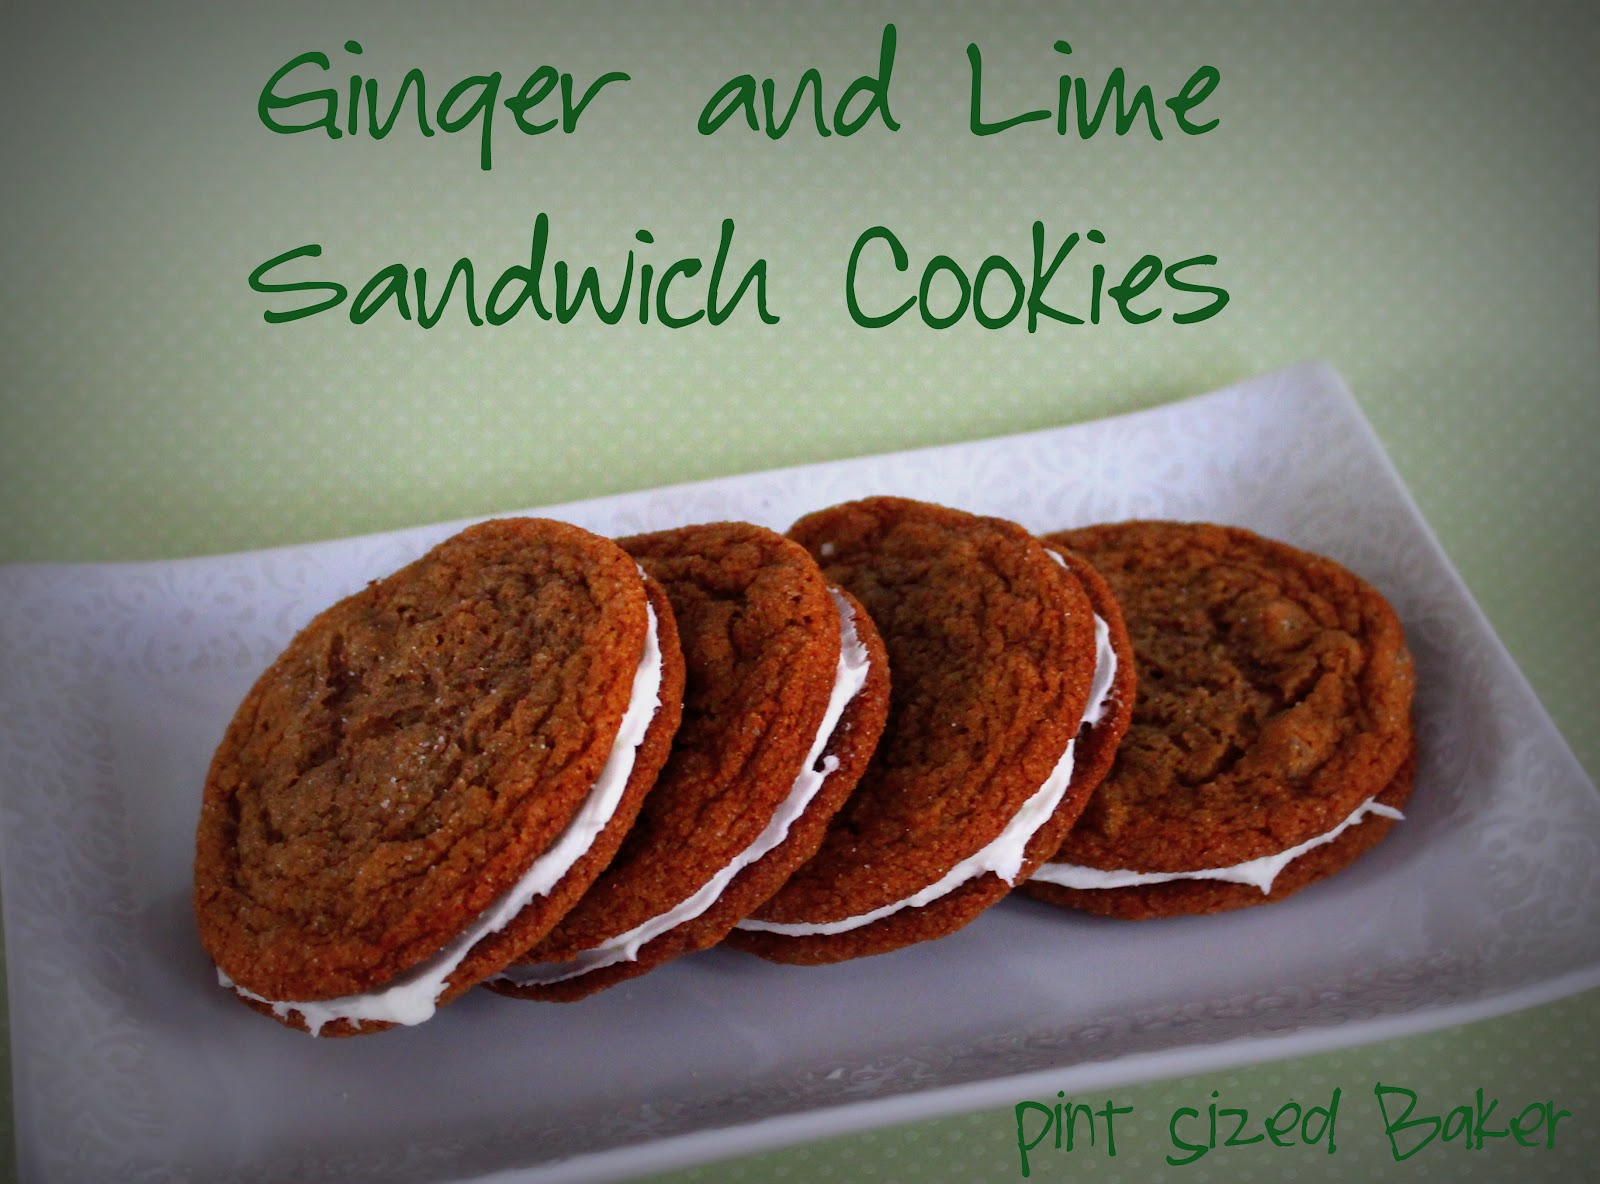 Ginger Snap Cookies And Lime Sandwiches Pint Sized Baker